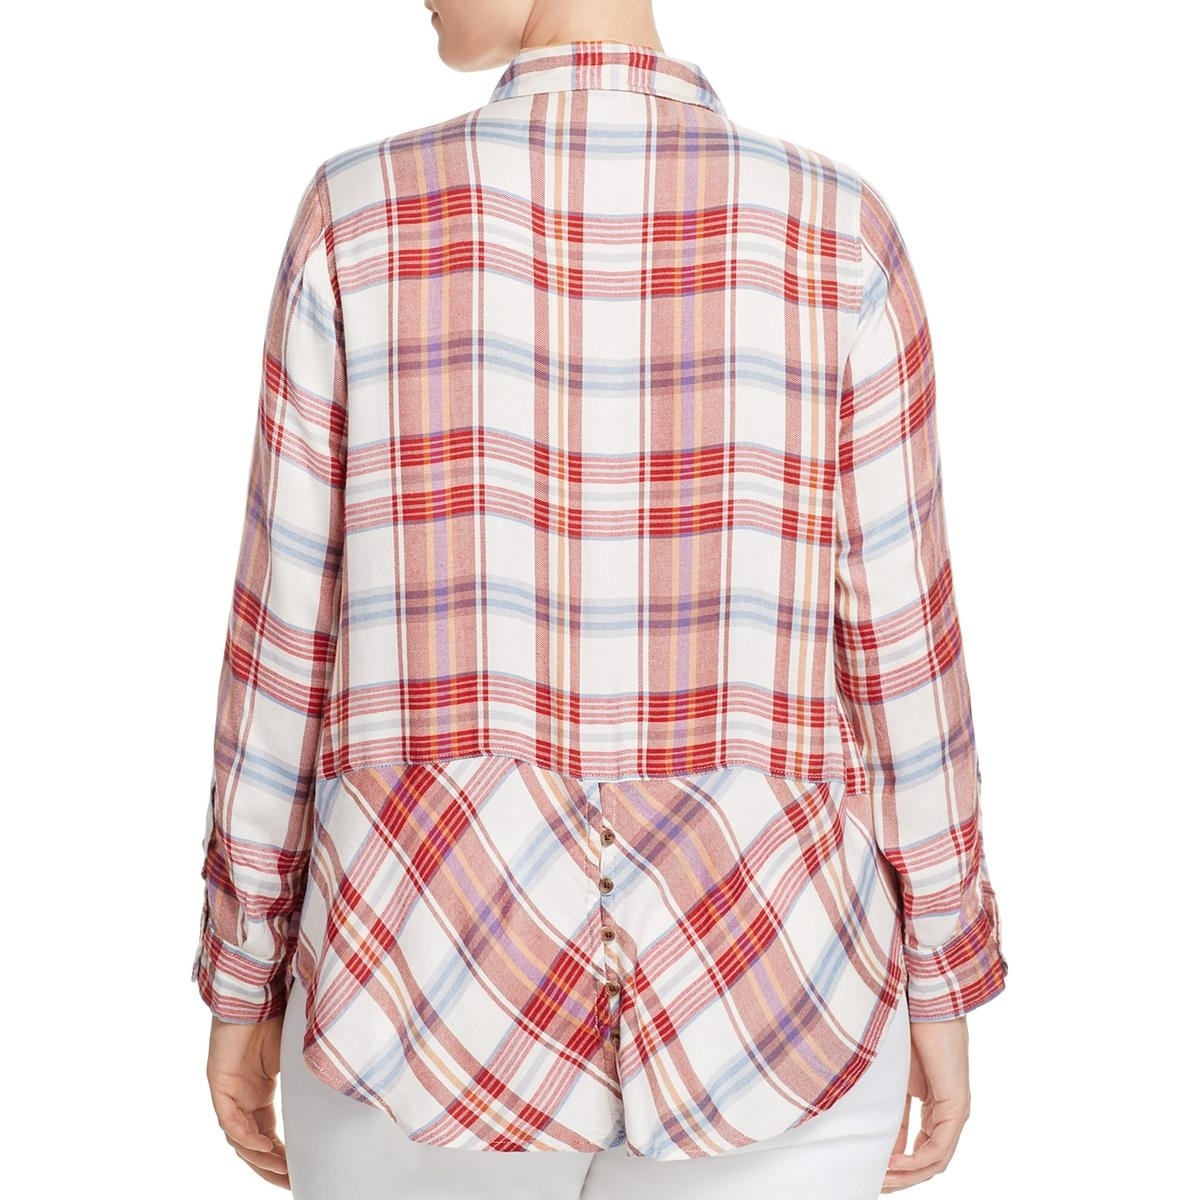 e7896499d8133 Shop Lucky Brand Womens Plus Bungalow Button-Down Top Plaid Long Sleeves -  Free Shipping On Orders Over  45 - Overstock.com - 17008551